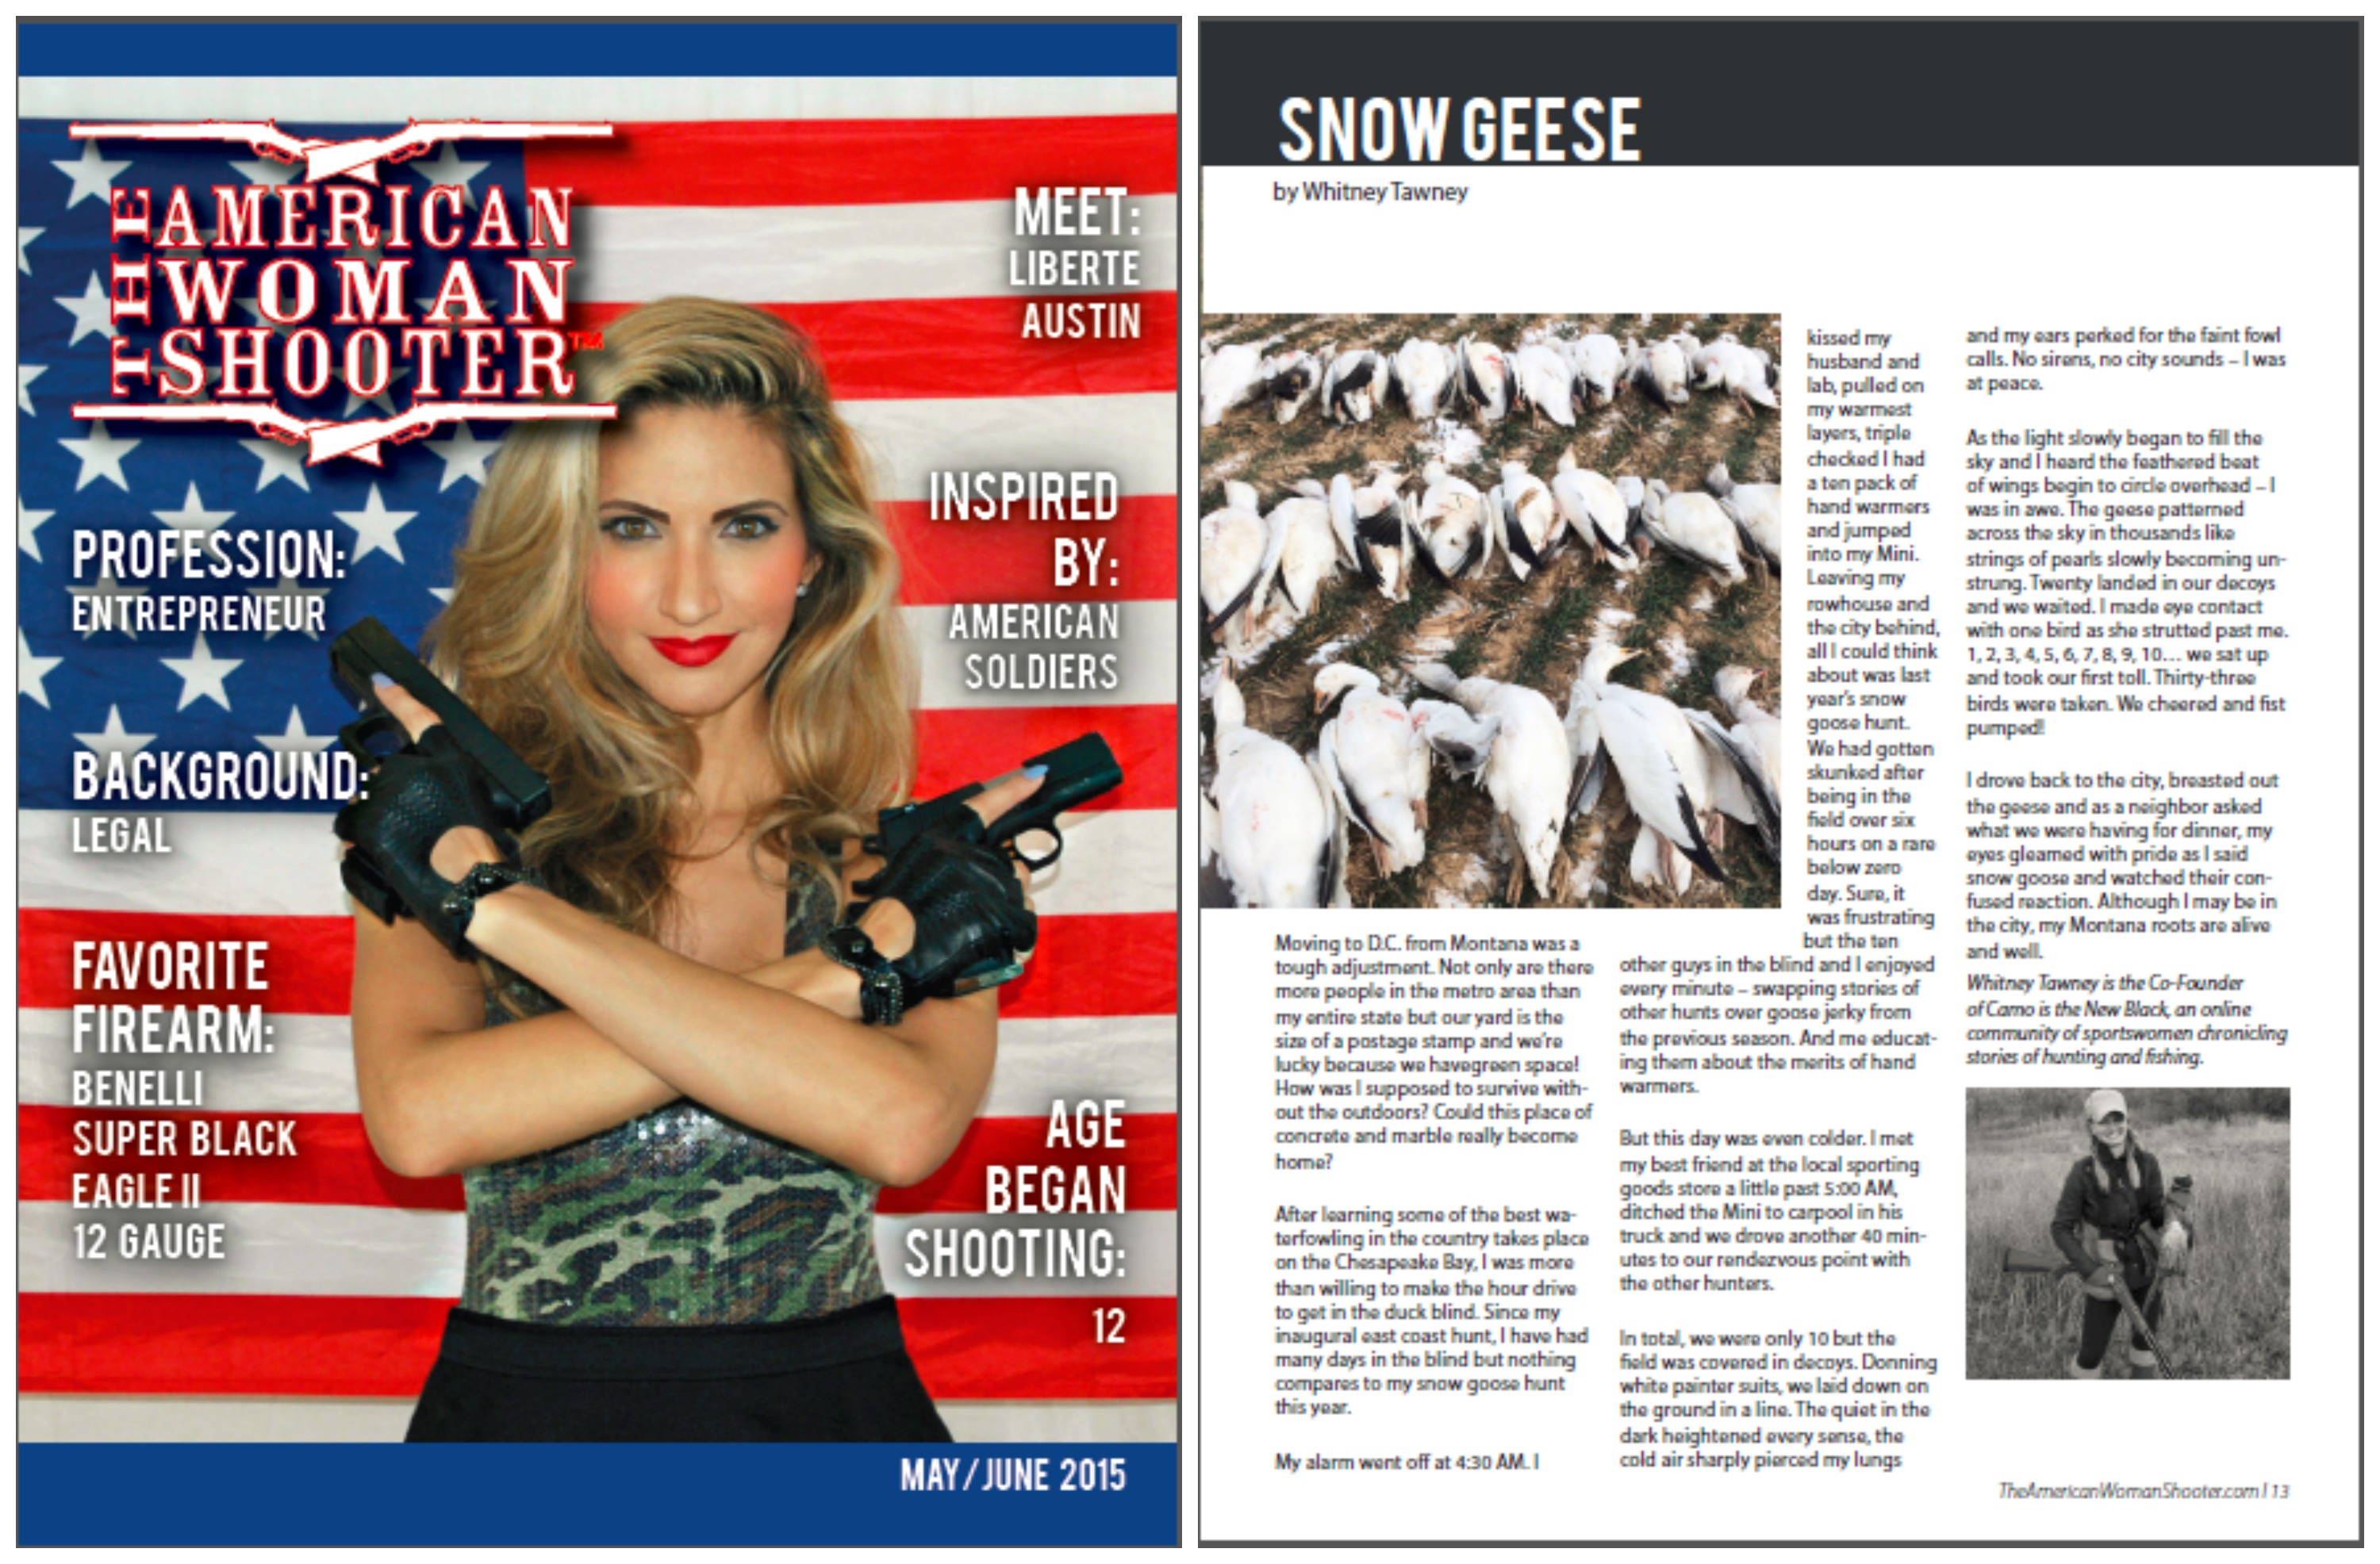 The American Woman Shooter May/June 2015